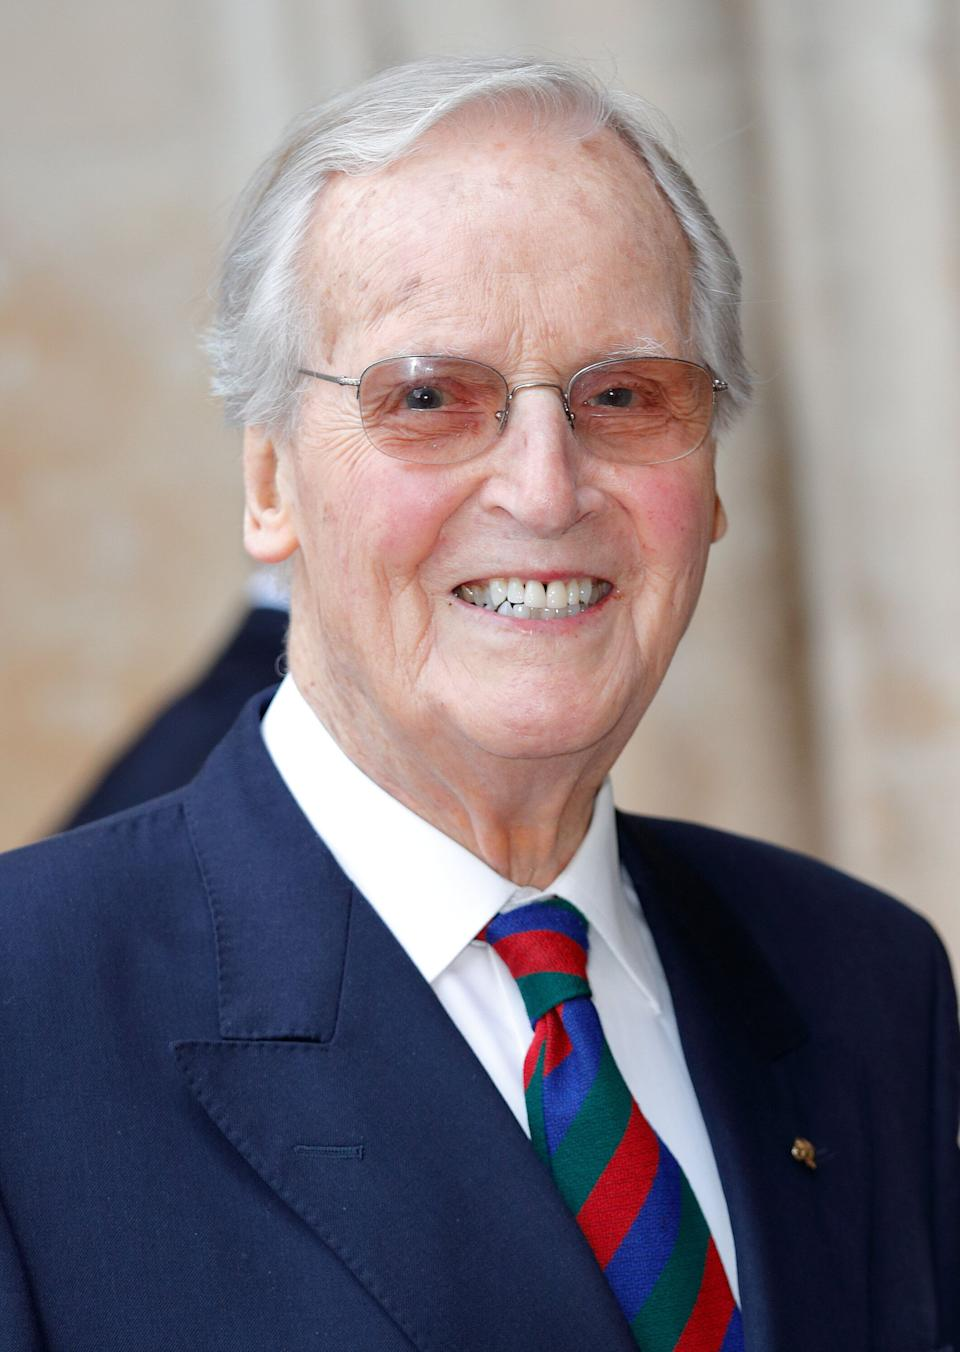 <strong>Nicholas Parsons (1923 - 2020)<br /><br /></strong>The broadcasting legend was best known as the host of Radio 4's Just A Minute and the ITV game show Sale Of The Century.